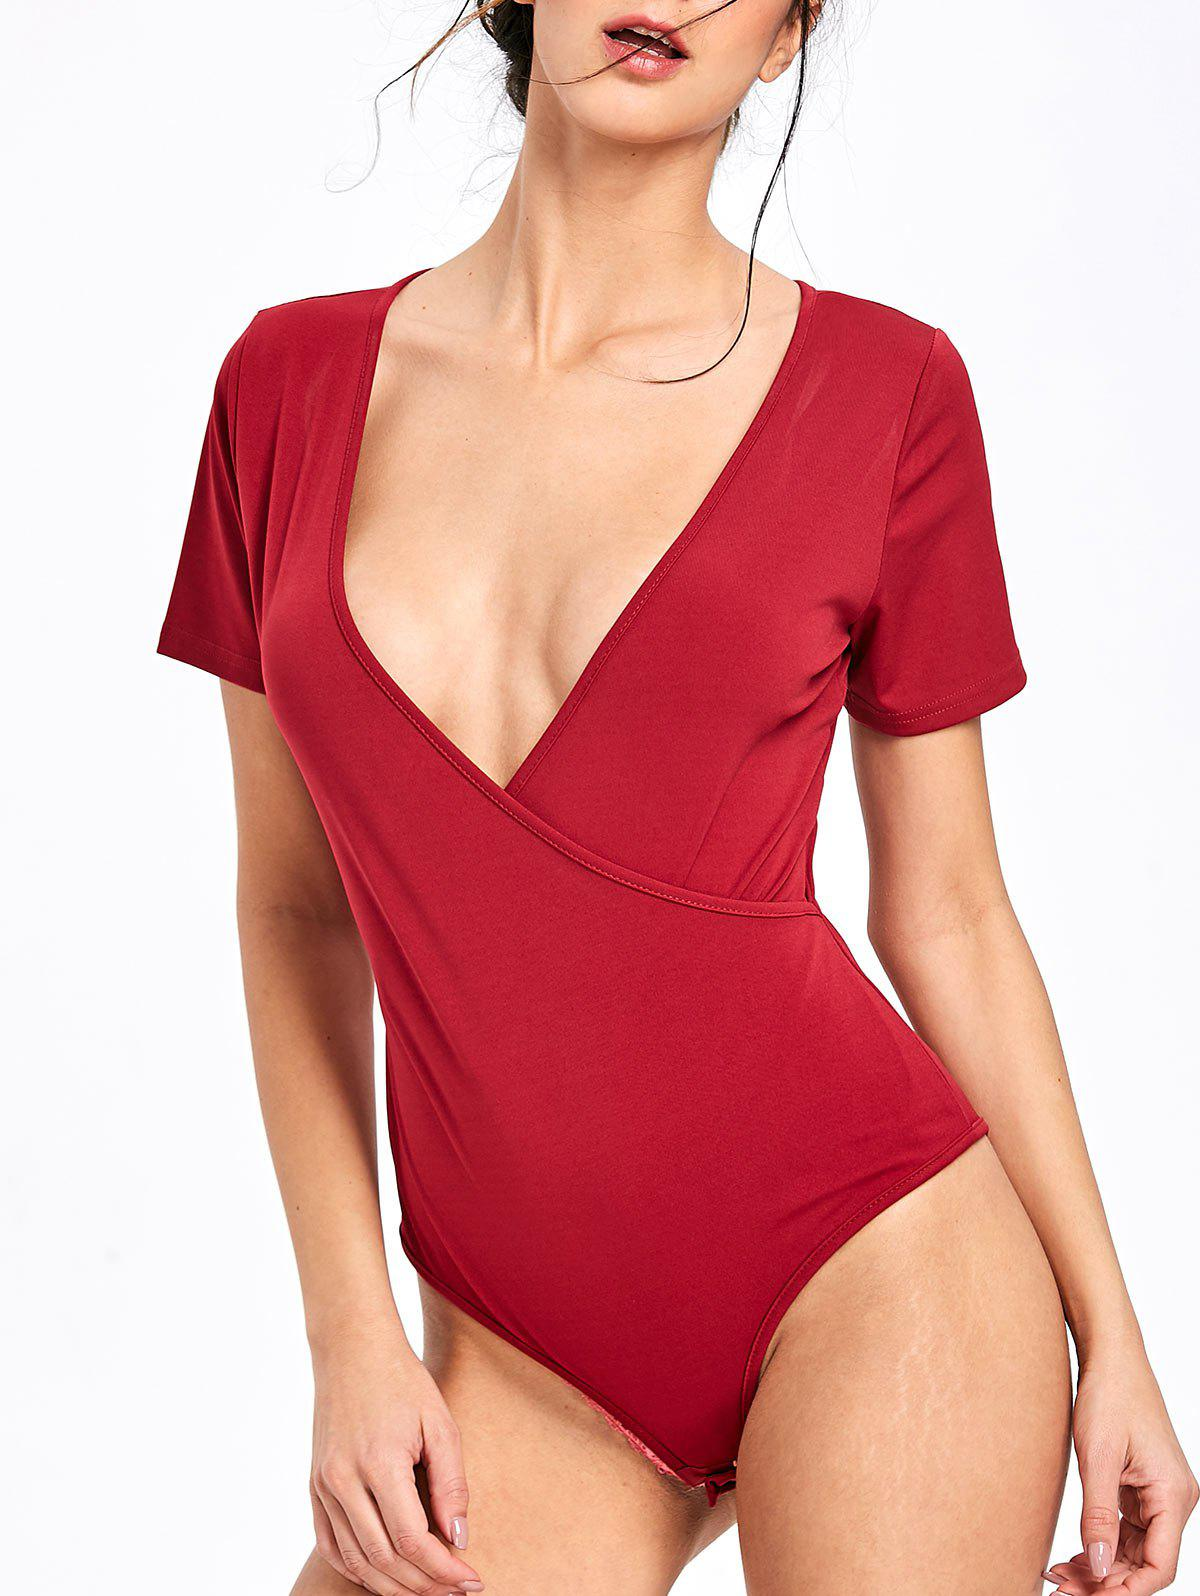 Skinny Low Cut Bodysuit - WINE RED S